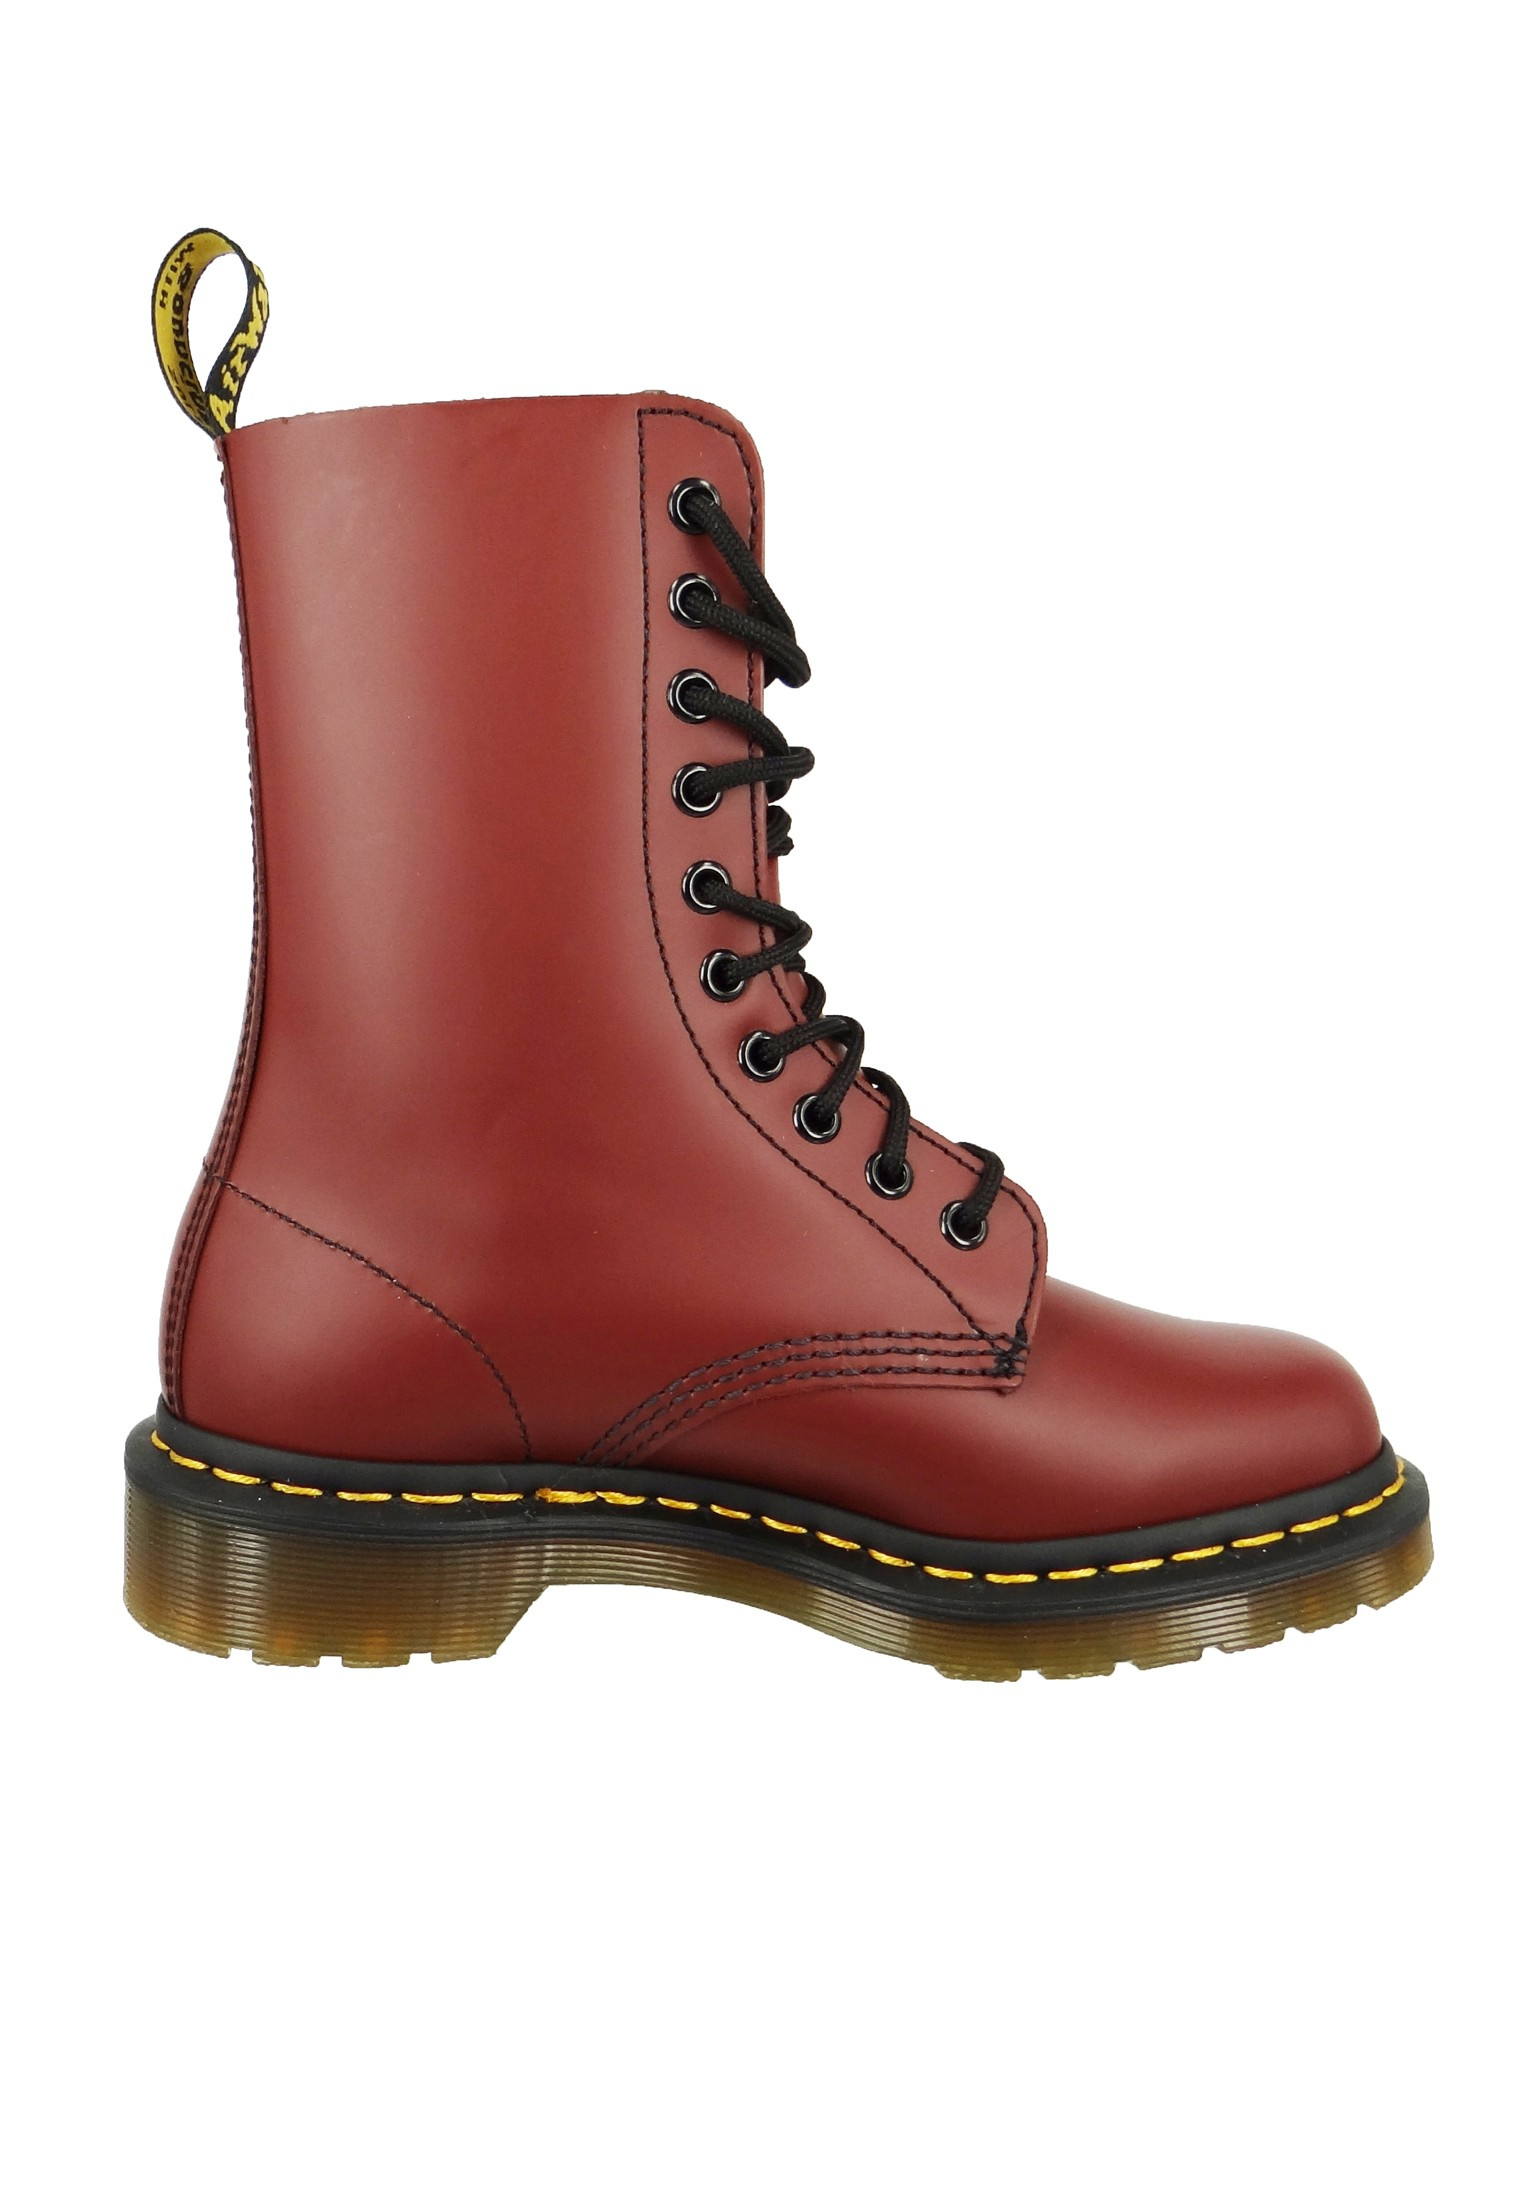 dr martens 1490 cherry red smooth rot weinrot 10 loch. Black Bedroom Furniture Sets. Home Design Ideas